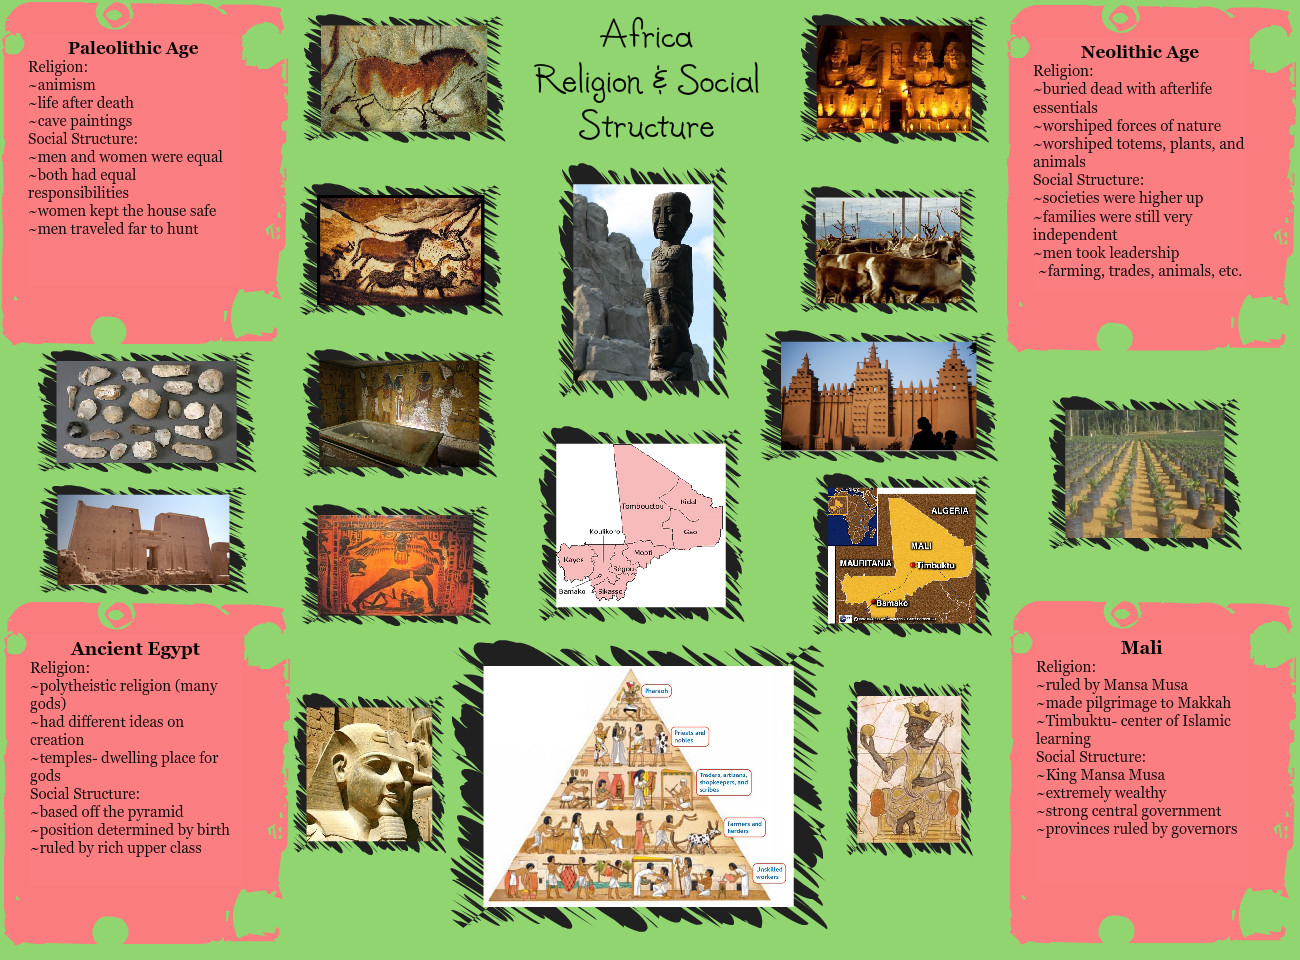 Africa: Religion and Social Structure